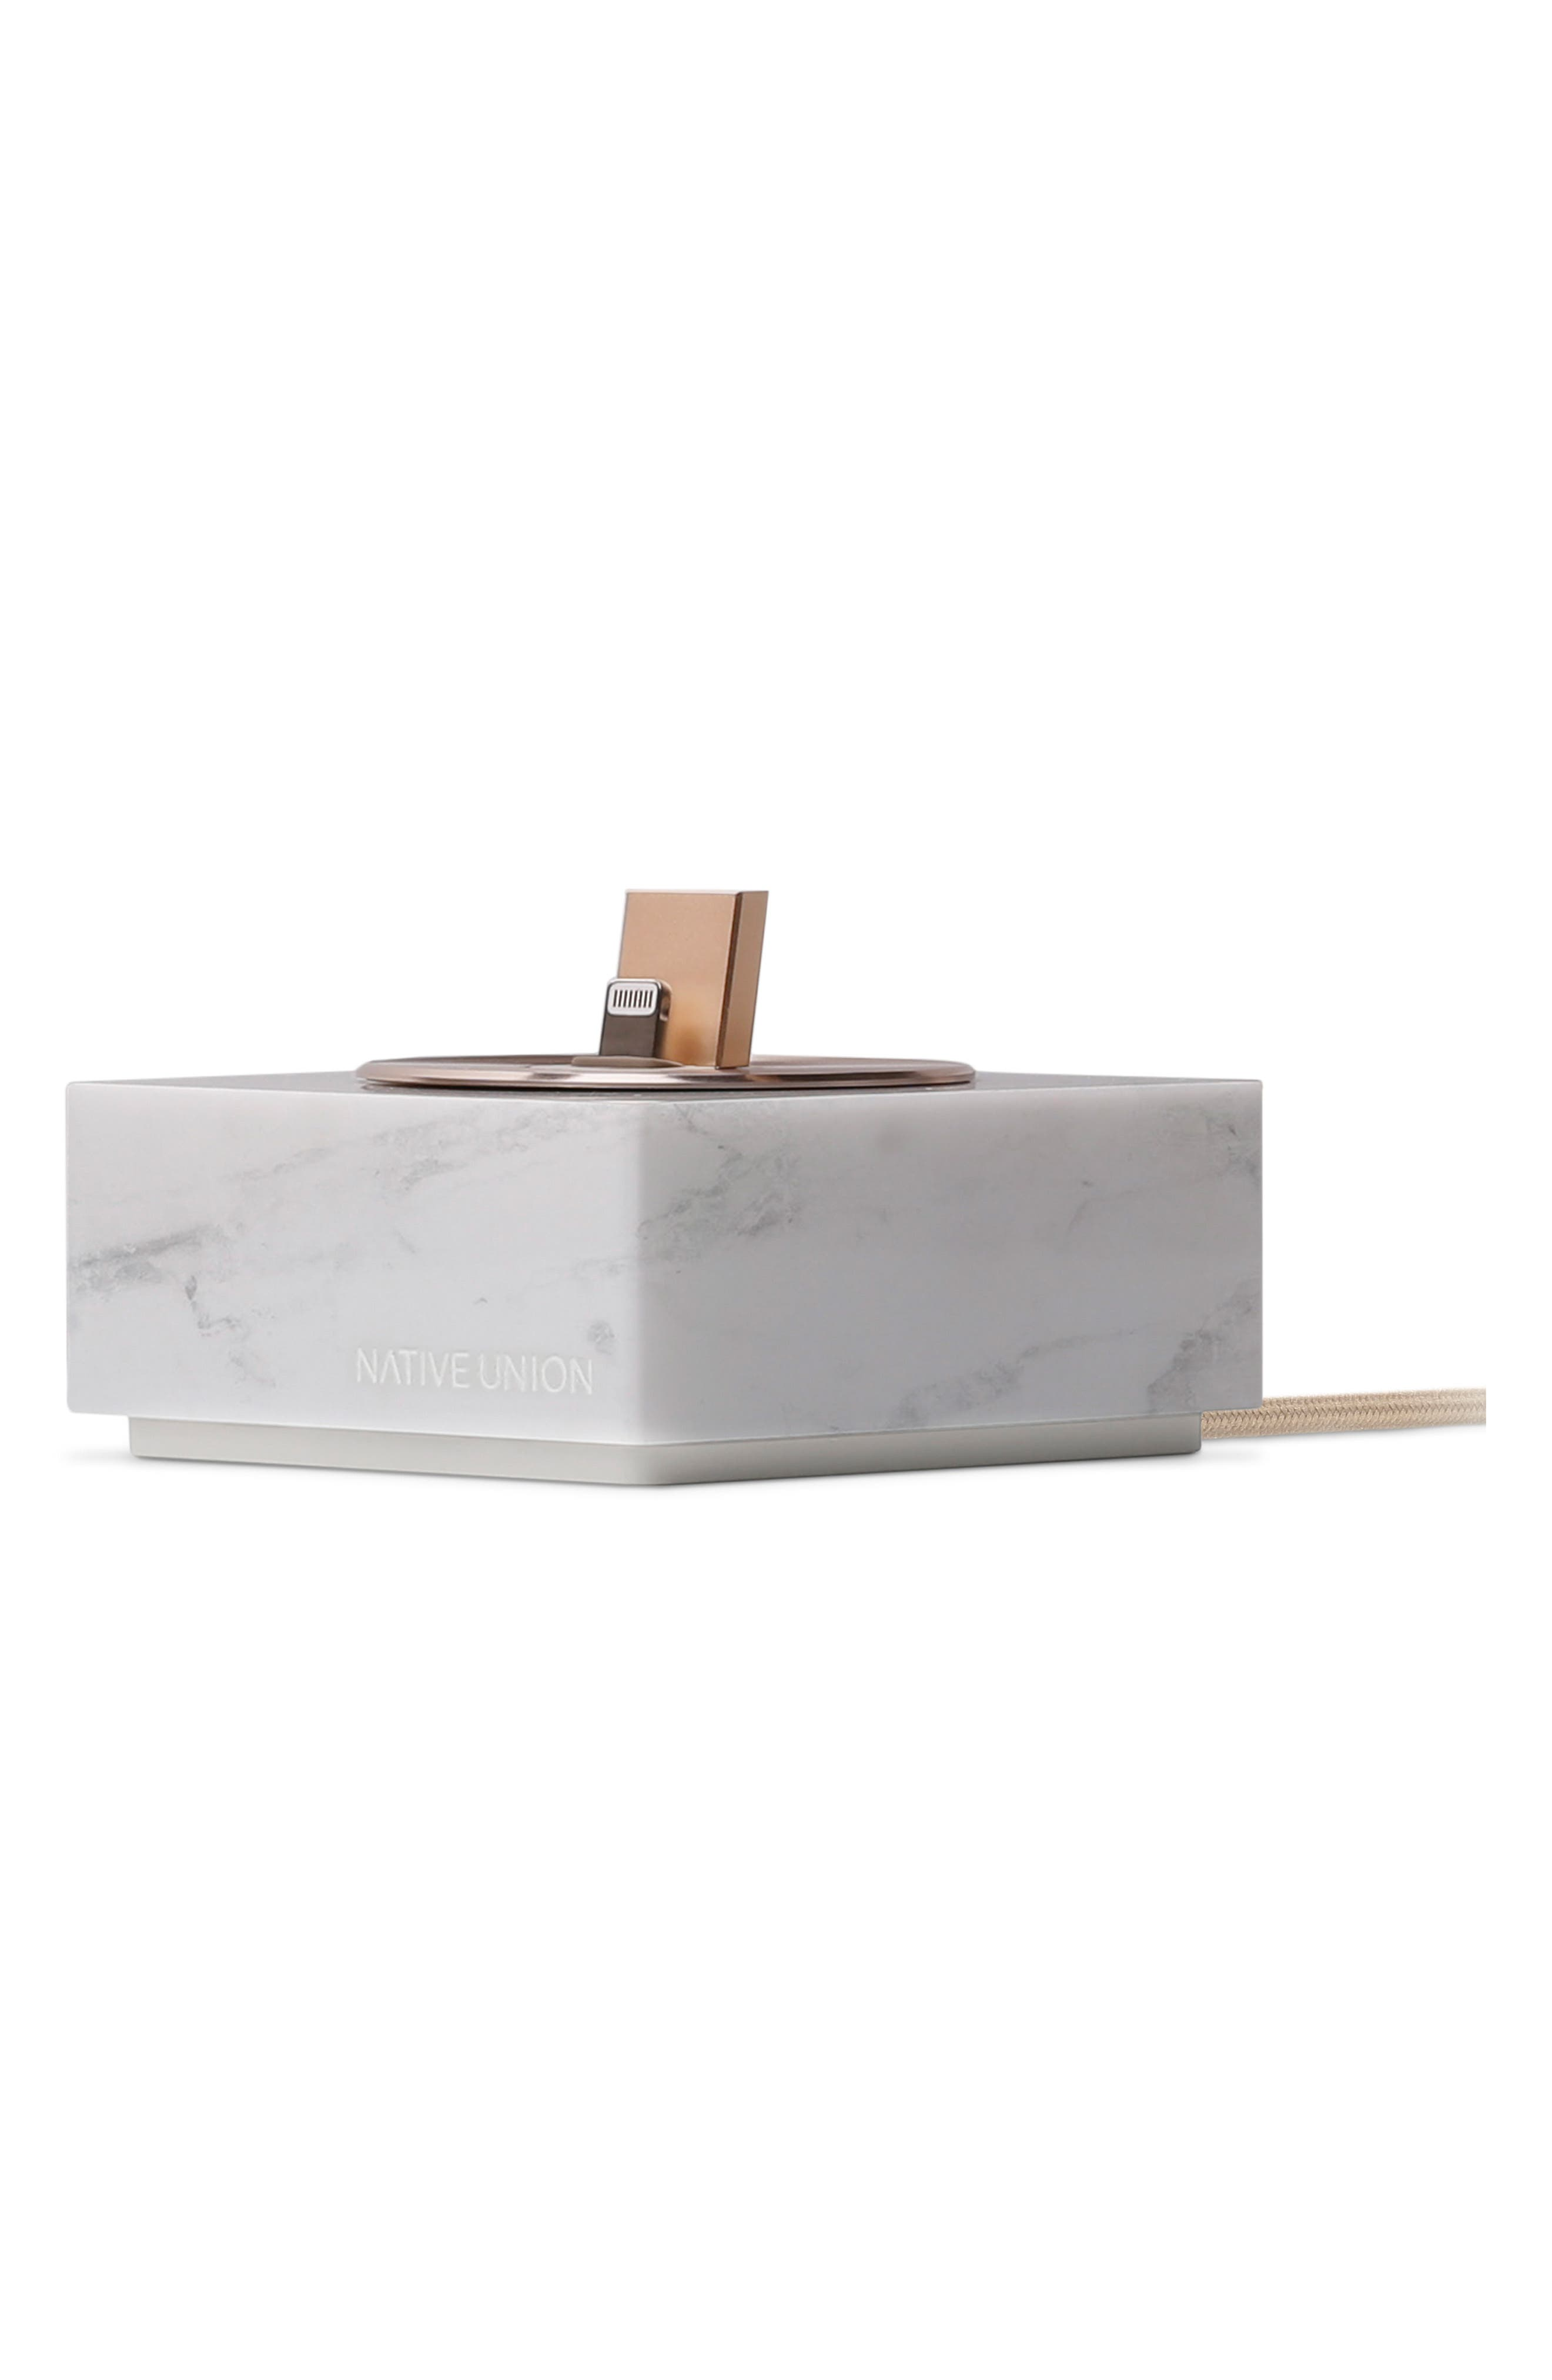 Native Union DOCK+ Marble Charging Station with Lightning Cable